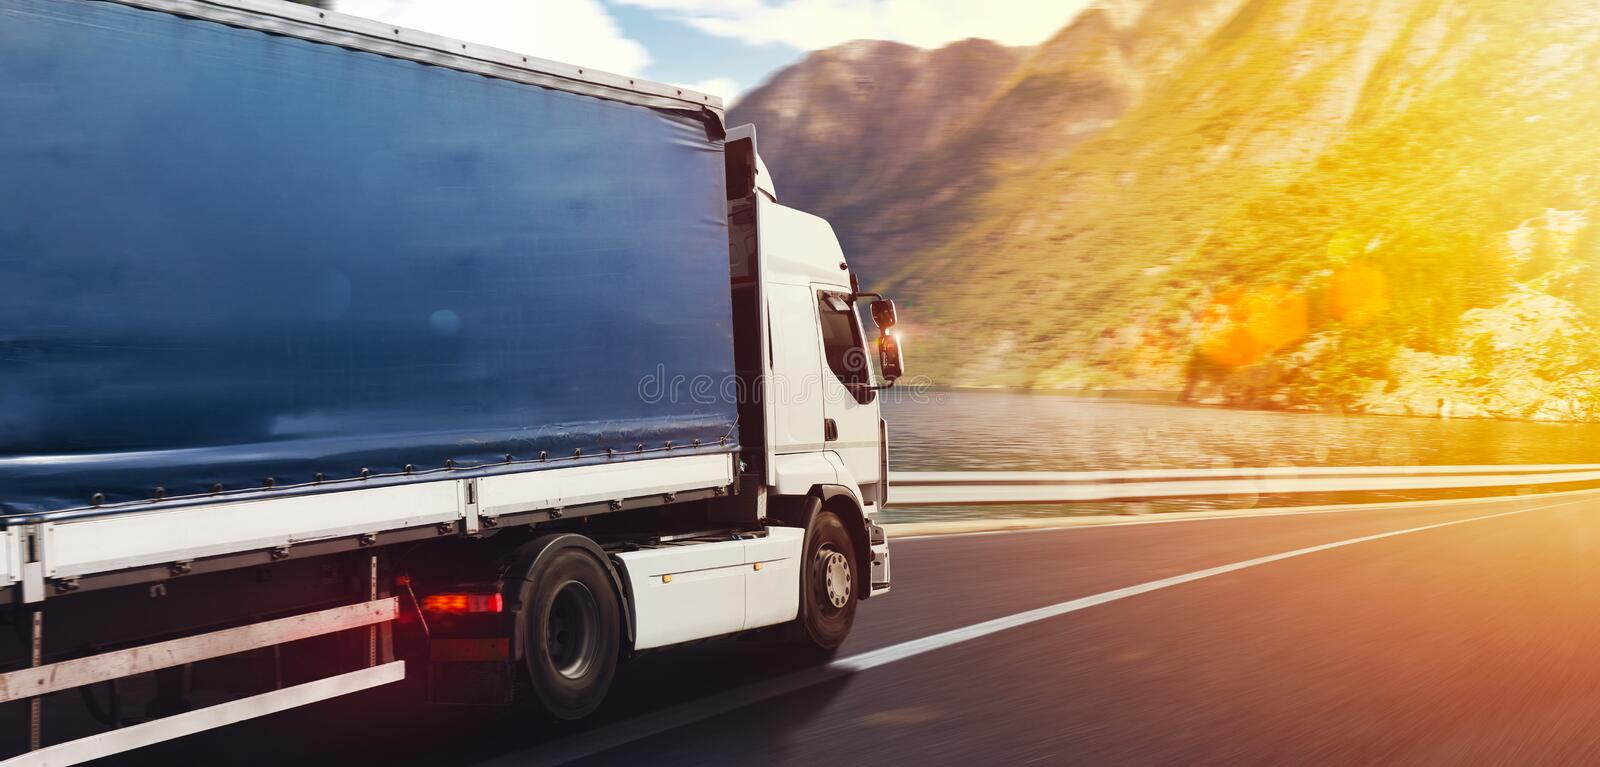 Truck run fast on the highway to deliver royalty free stock photography